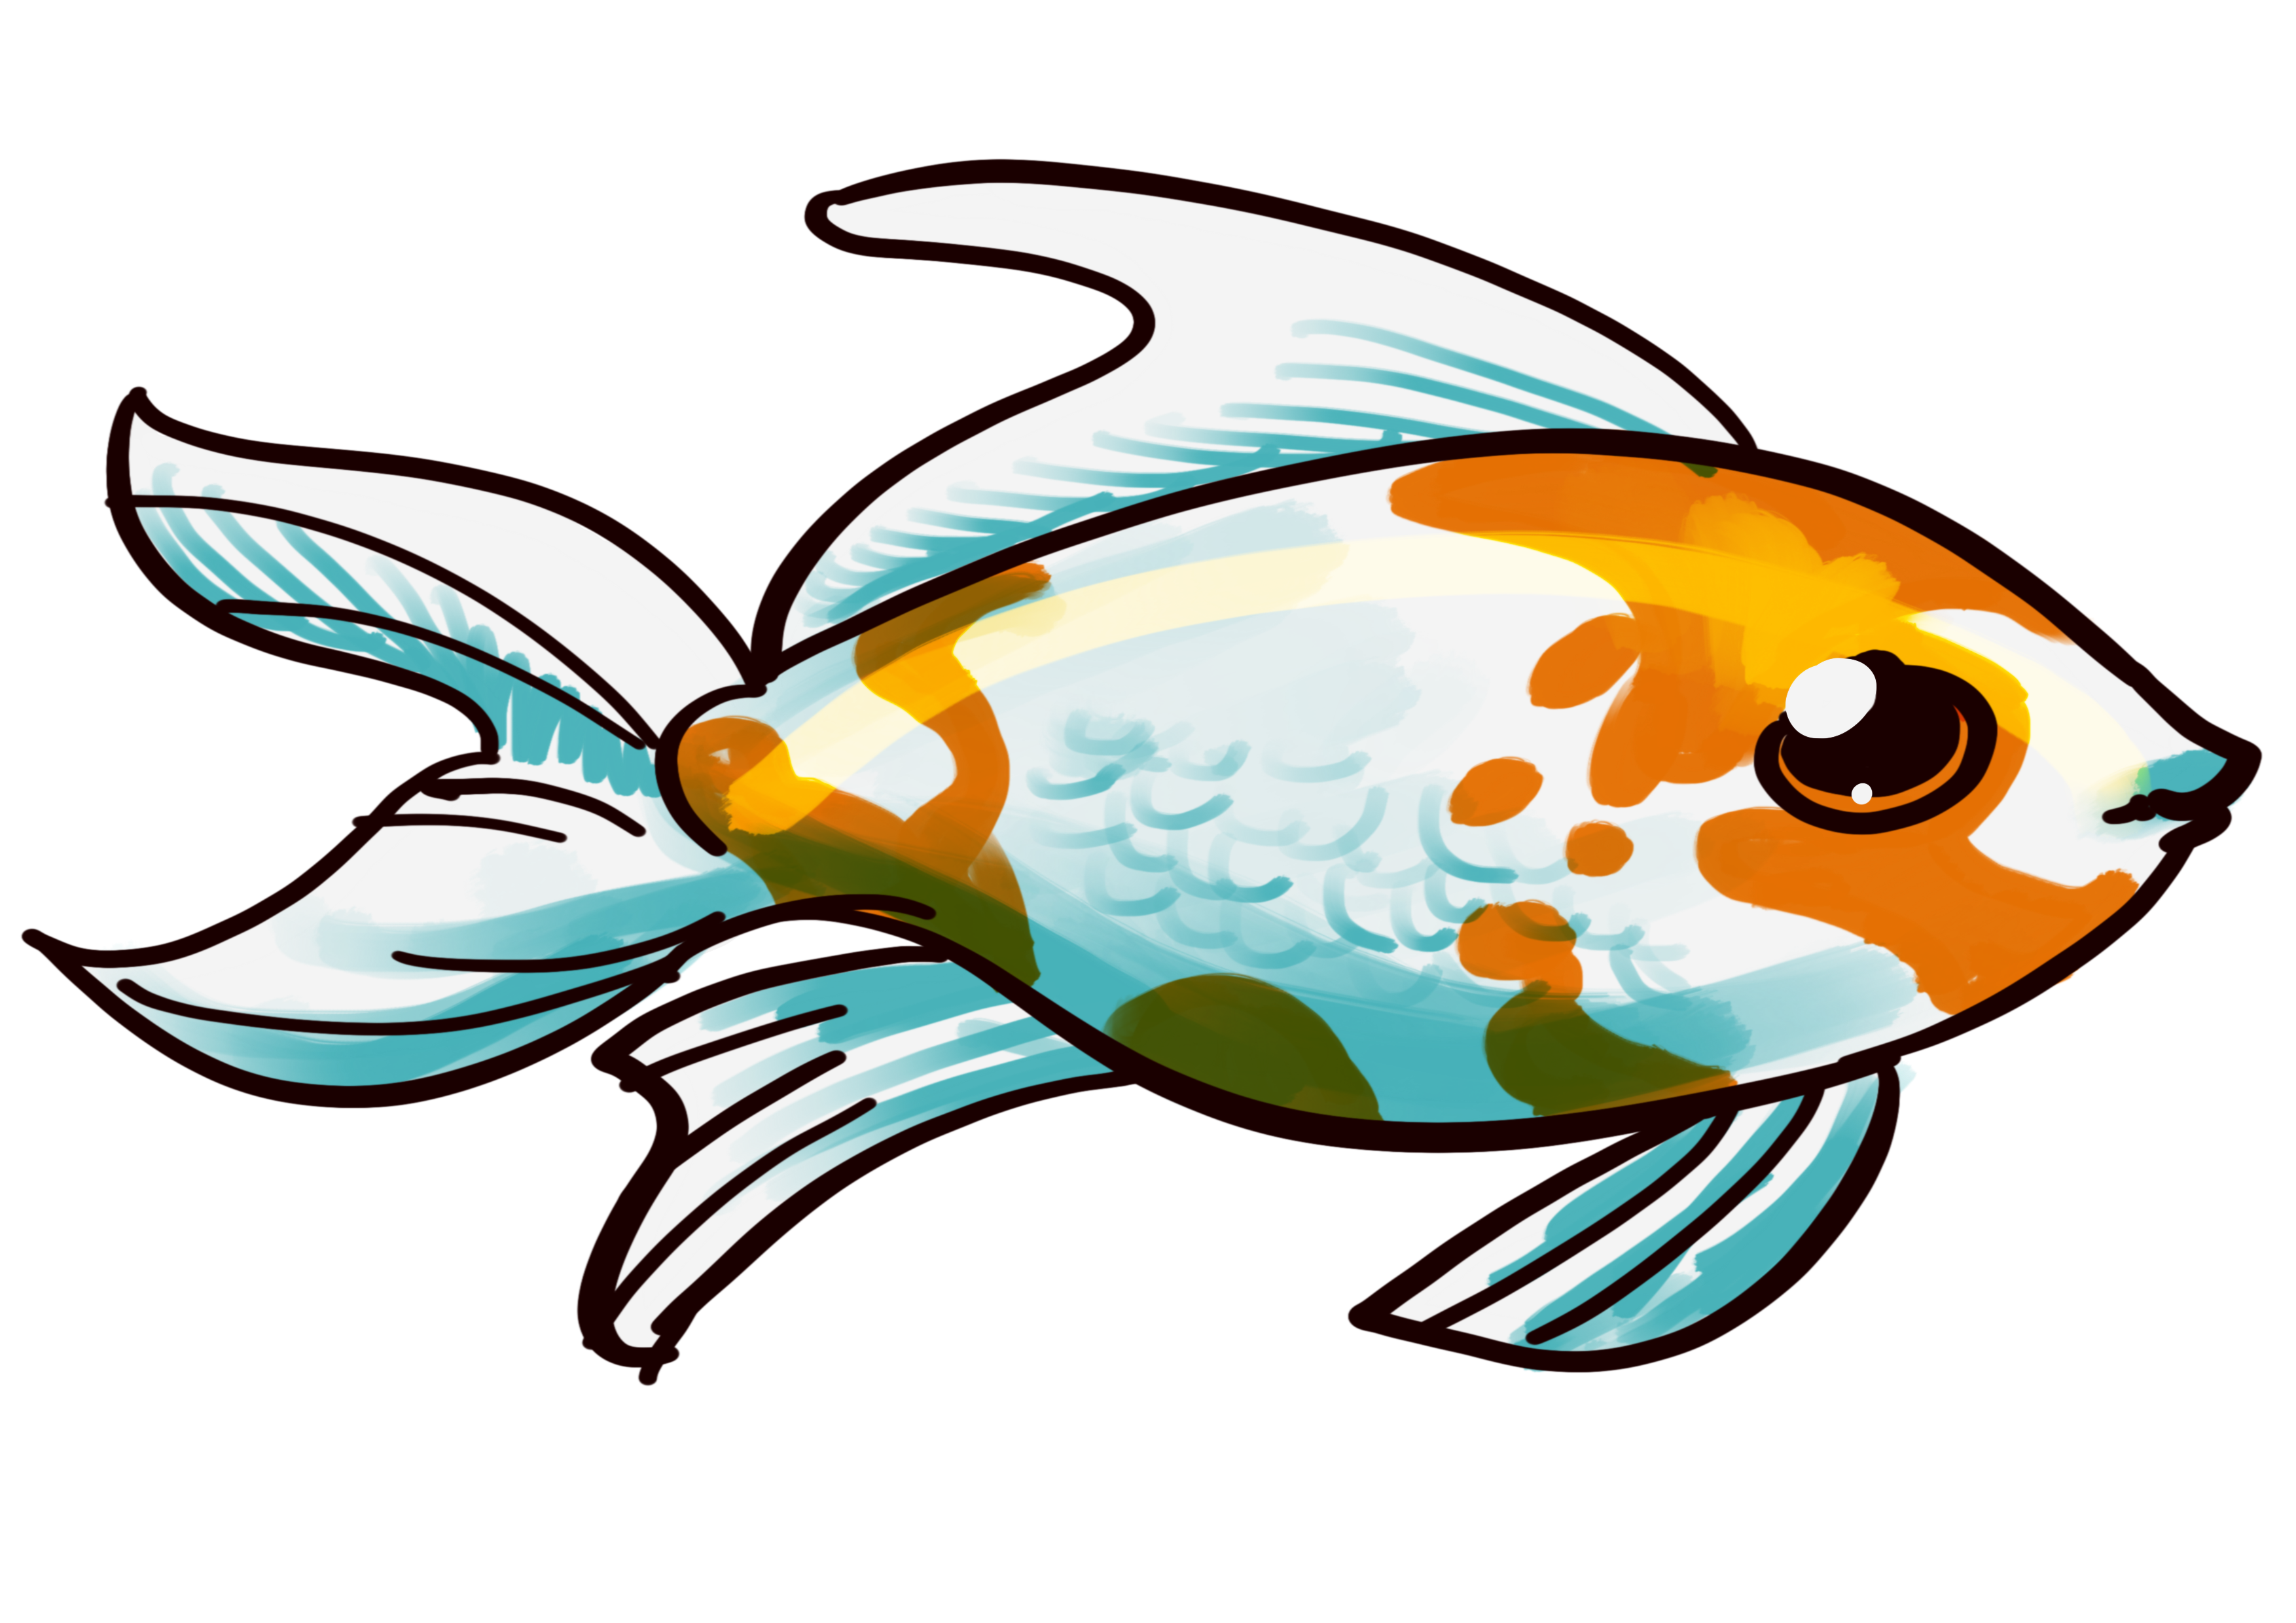 Fish tank plants clipart clipart freeuse stock Comet Goldfish - Comet Goldfish Care and info clipart freeuse stock